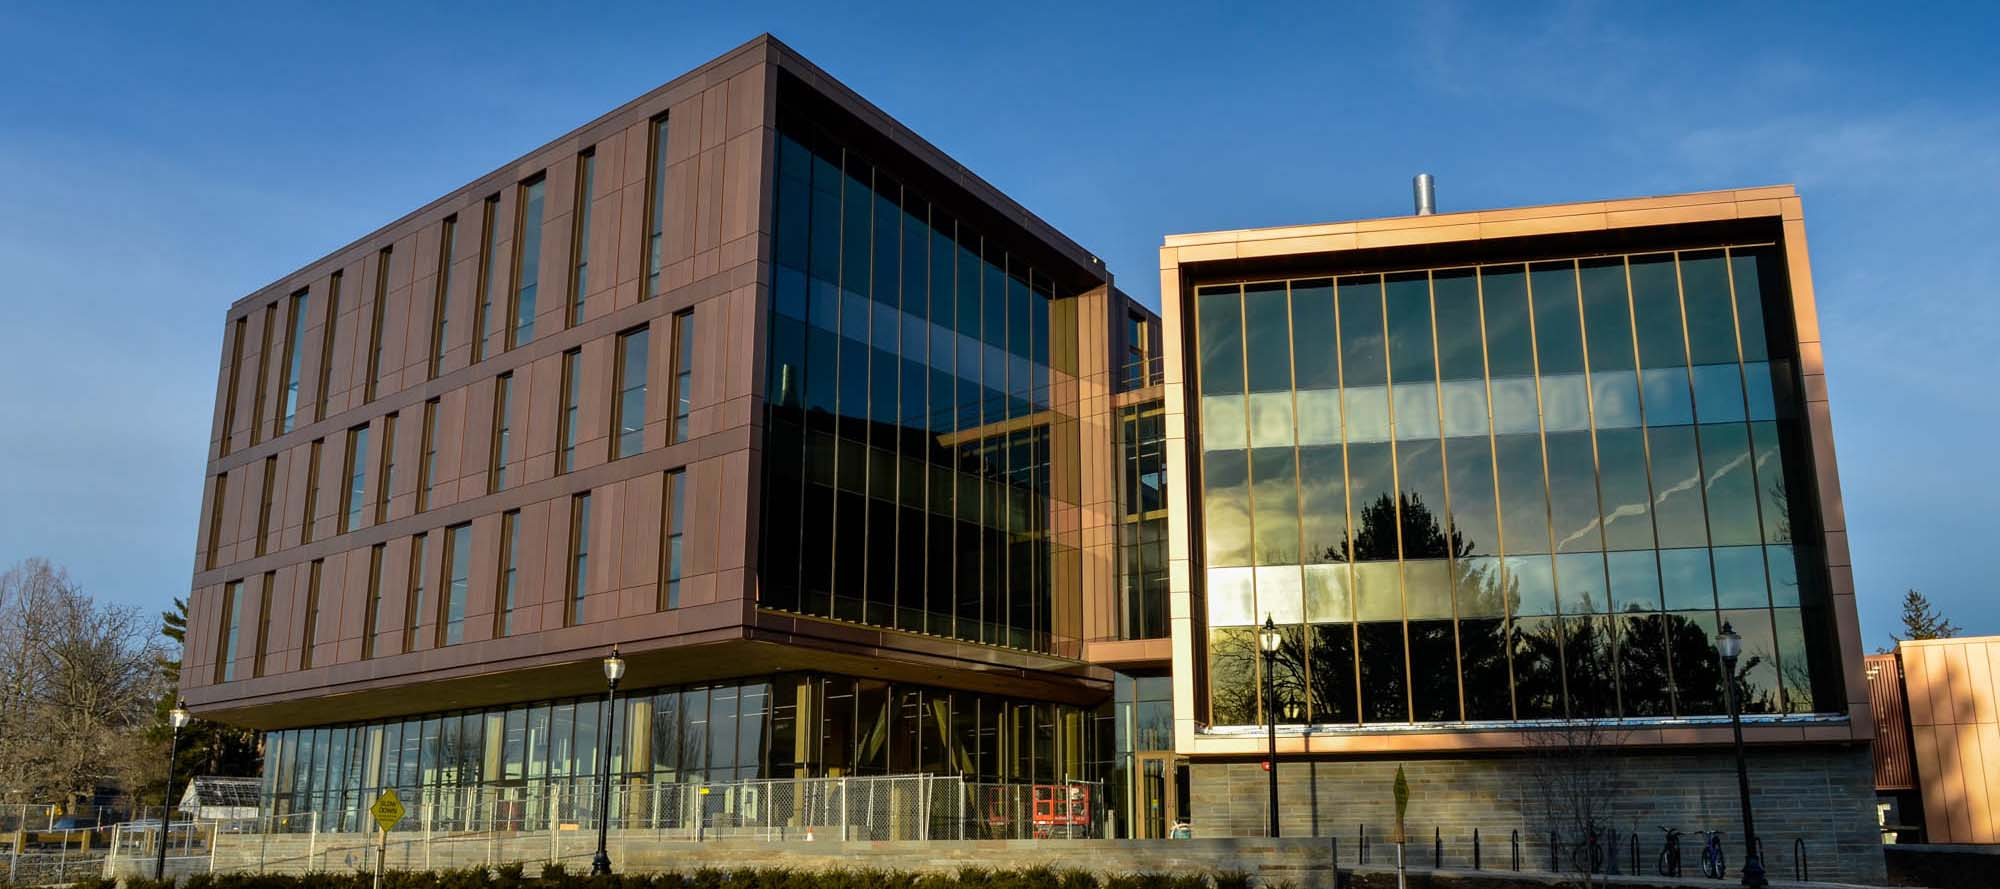 The john w olver design building at umass amherst for Building design